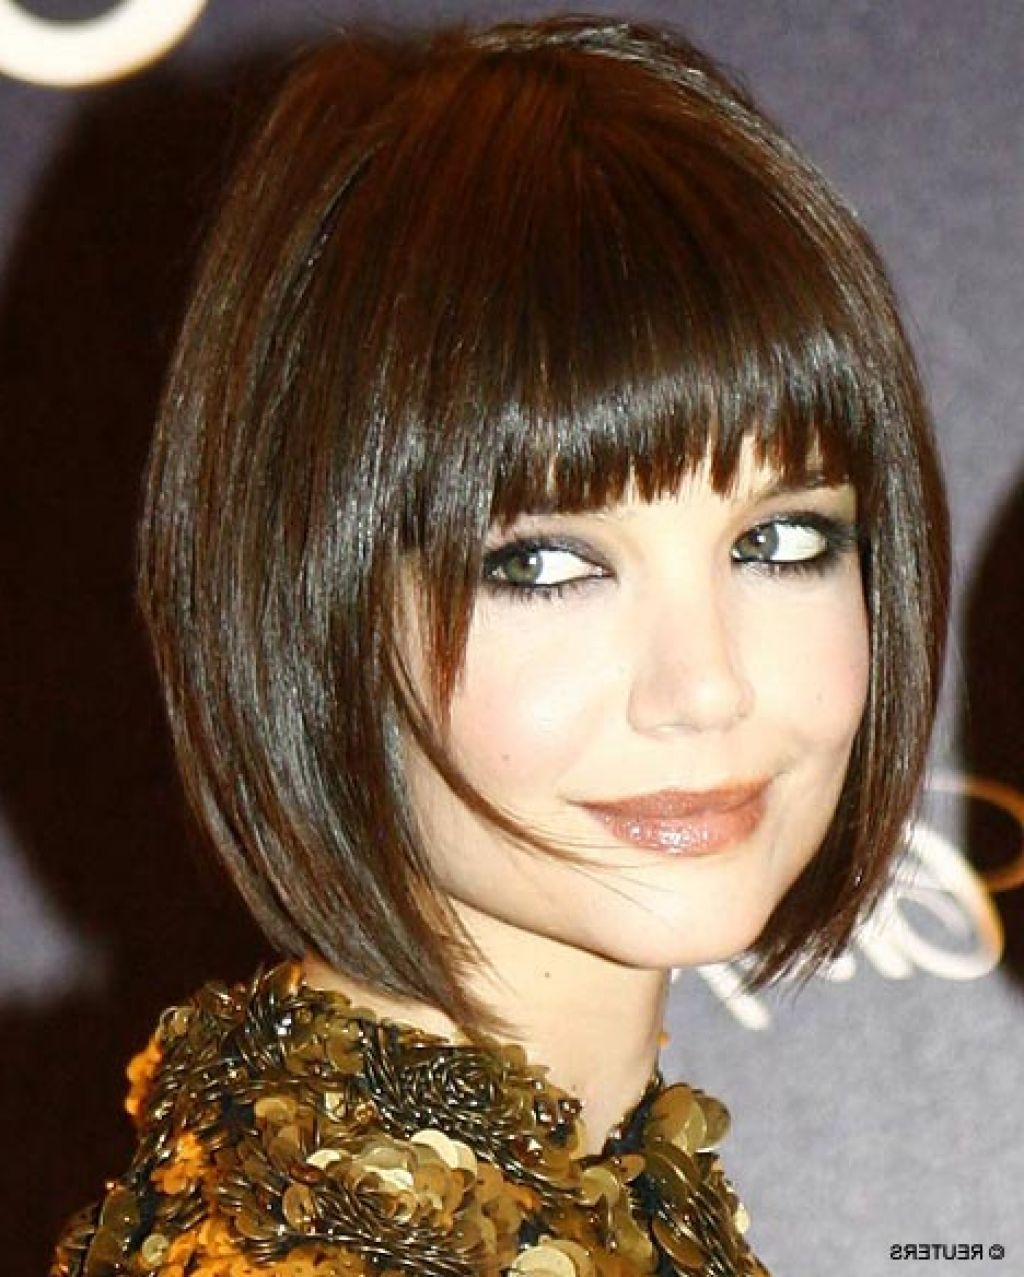 Short blunt bob hairstyle with bangs short hairstyles - Wavy Angled Bob Haircuts Short Angled Bob Haircut With Bangs 2015 Hairstyles Trend Ombre Photos